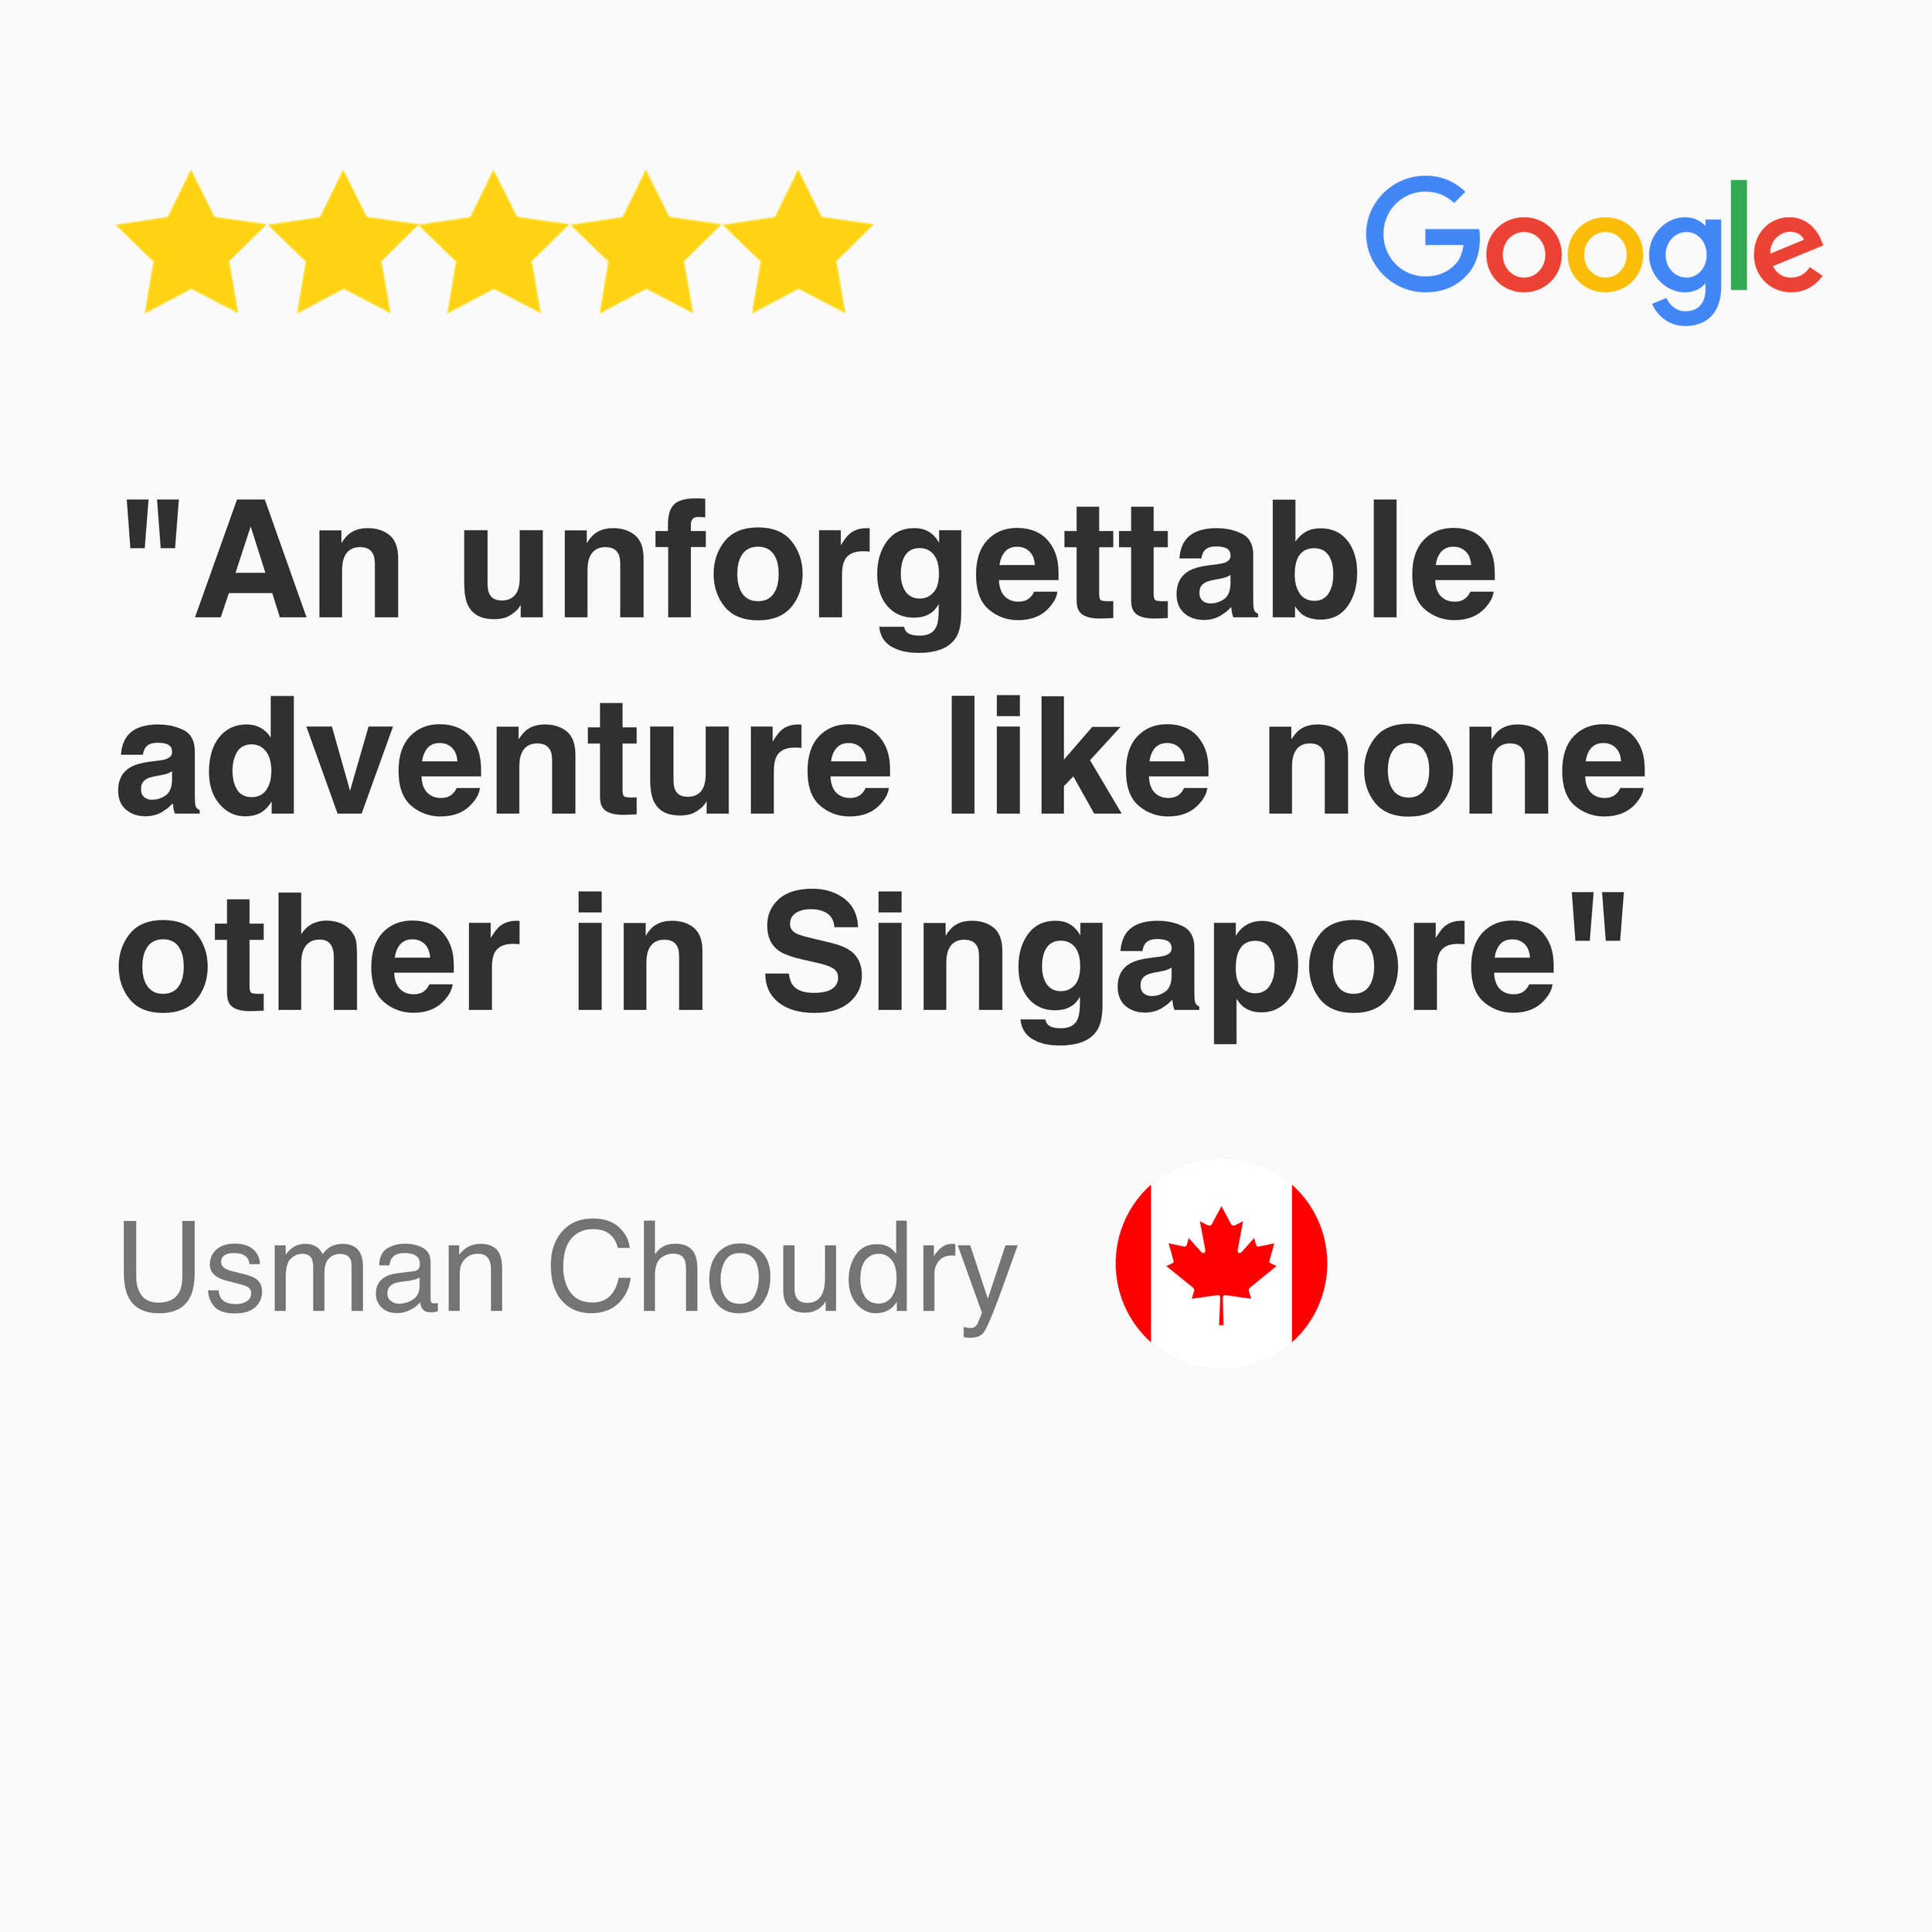 Google review for kayak fishing Singapore tour 'Mangrove Maze': an unforgettable adventure like none other in Singapore